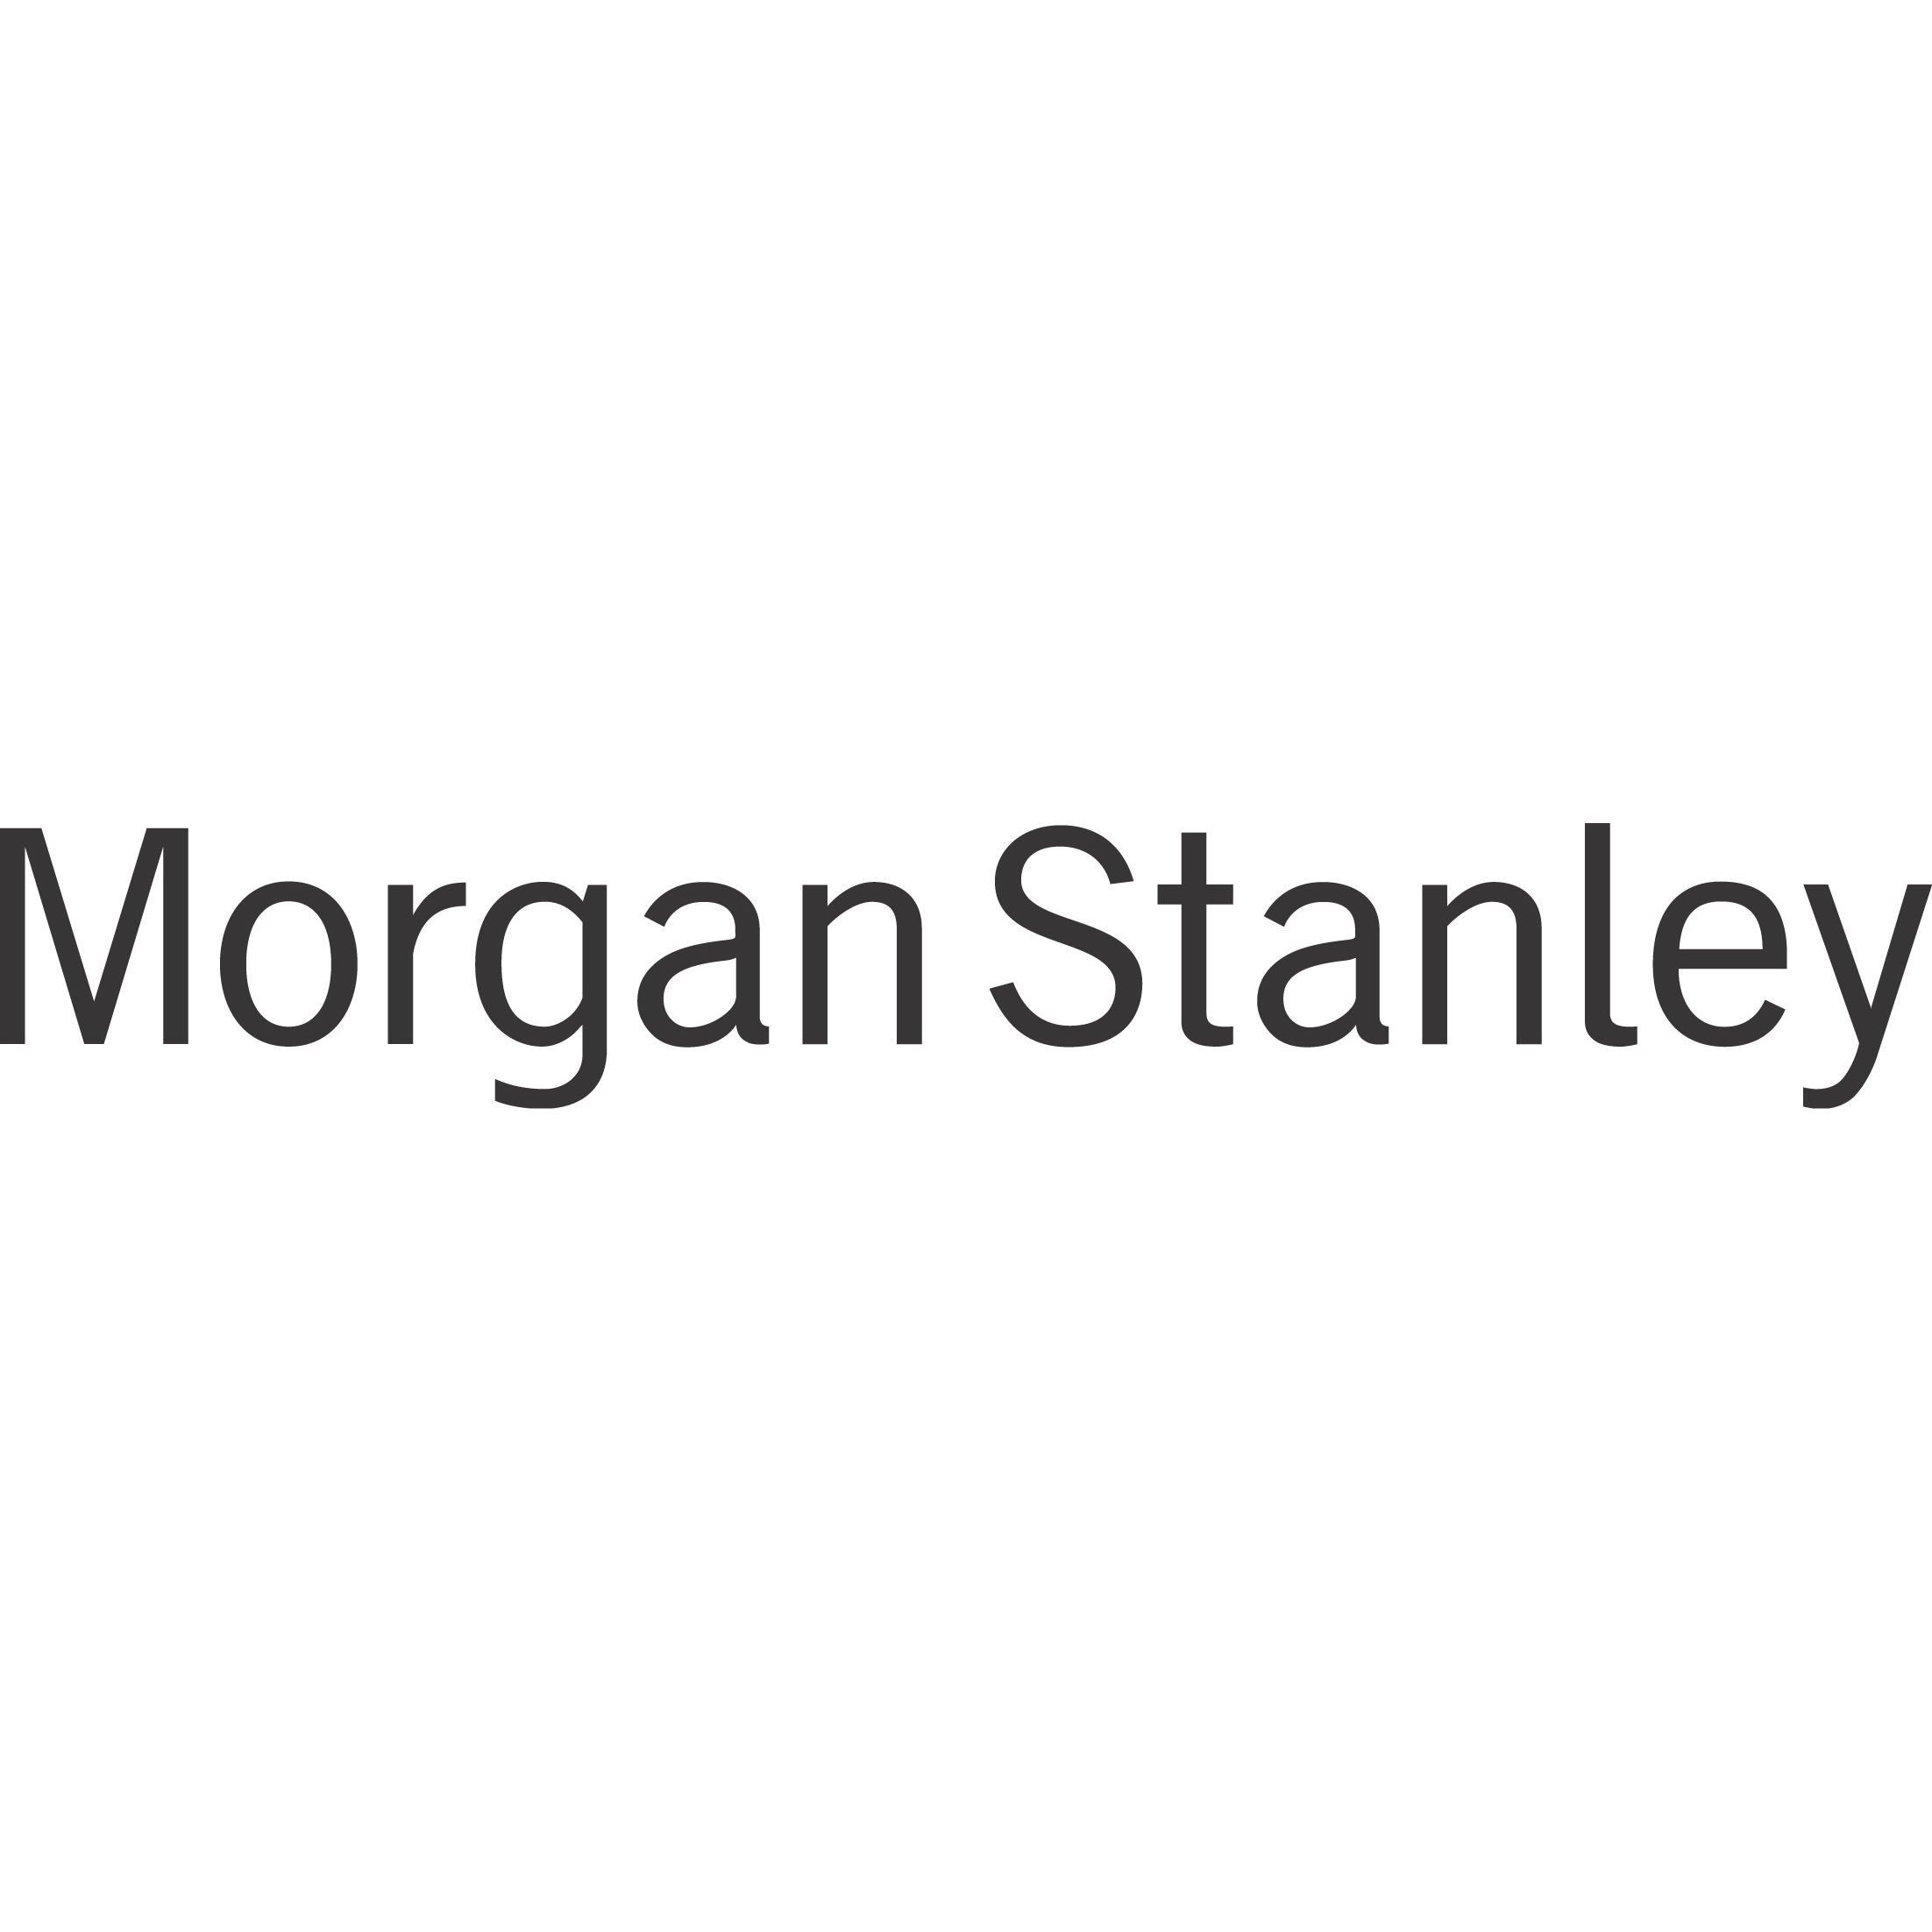 Ft Schlappatha - Morgan Stanley